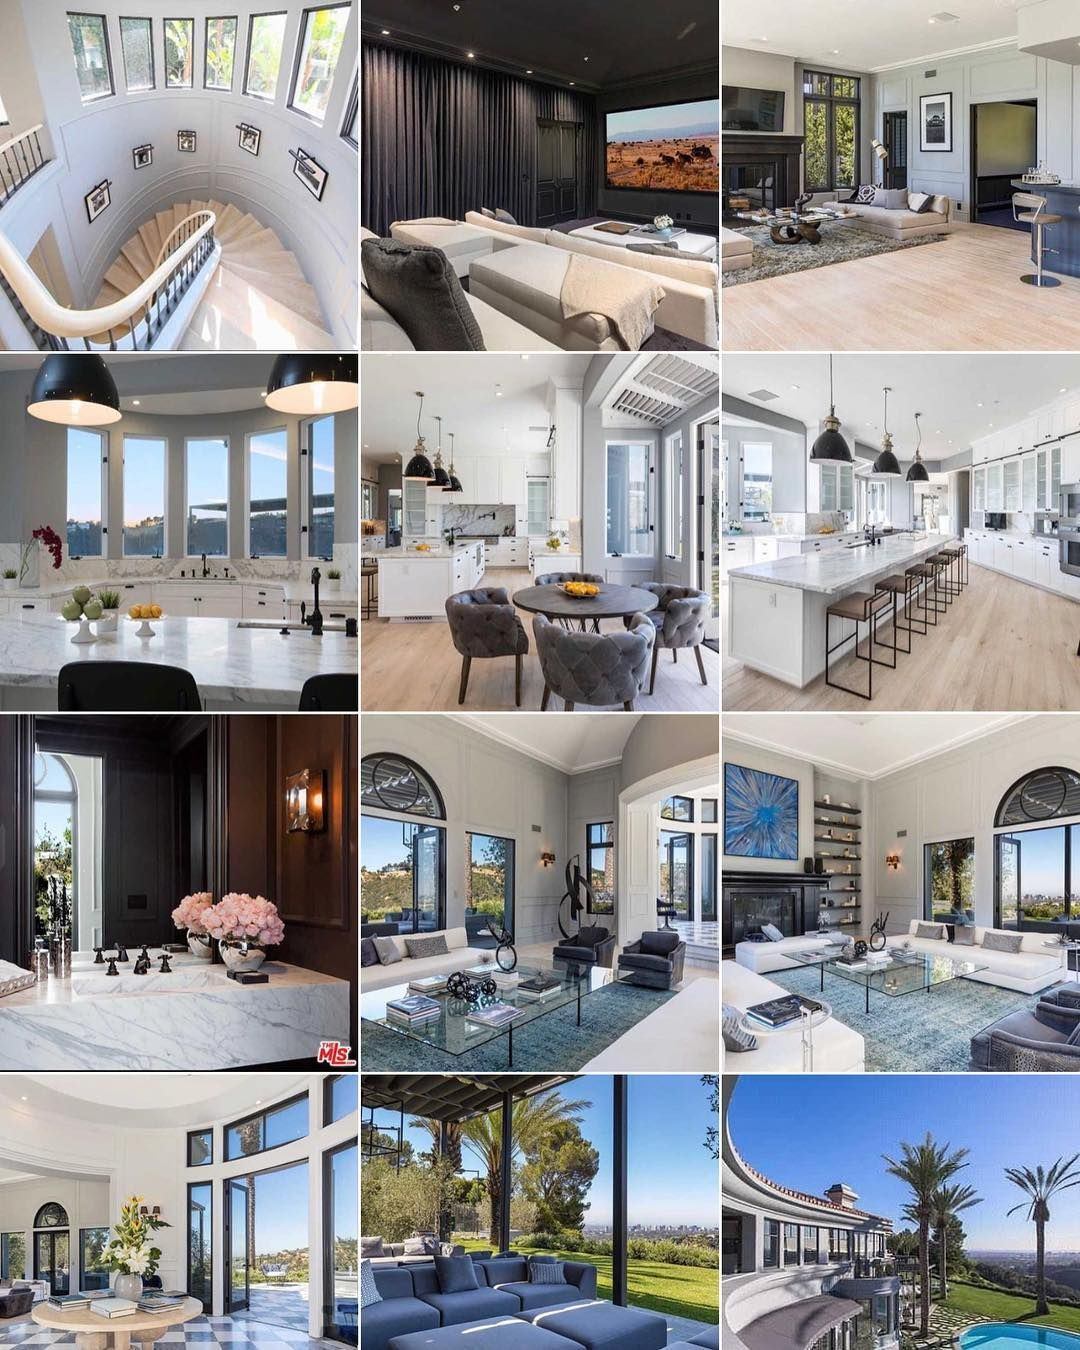 2048x2048 Kylie Jenner In Her House 5k Ipad Air Hd 4k: Pin By Ashley On House Design